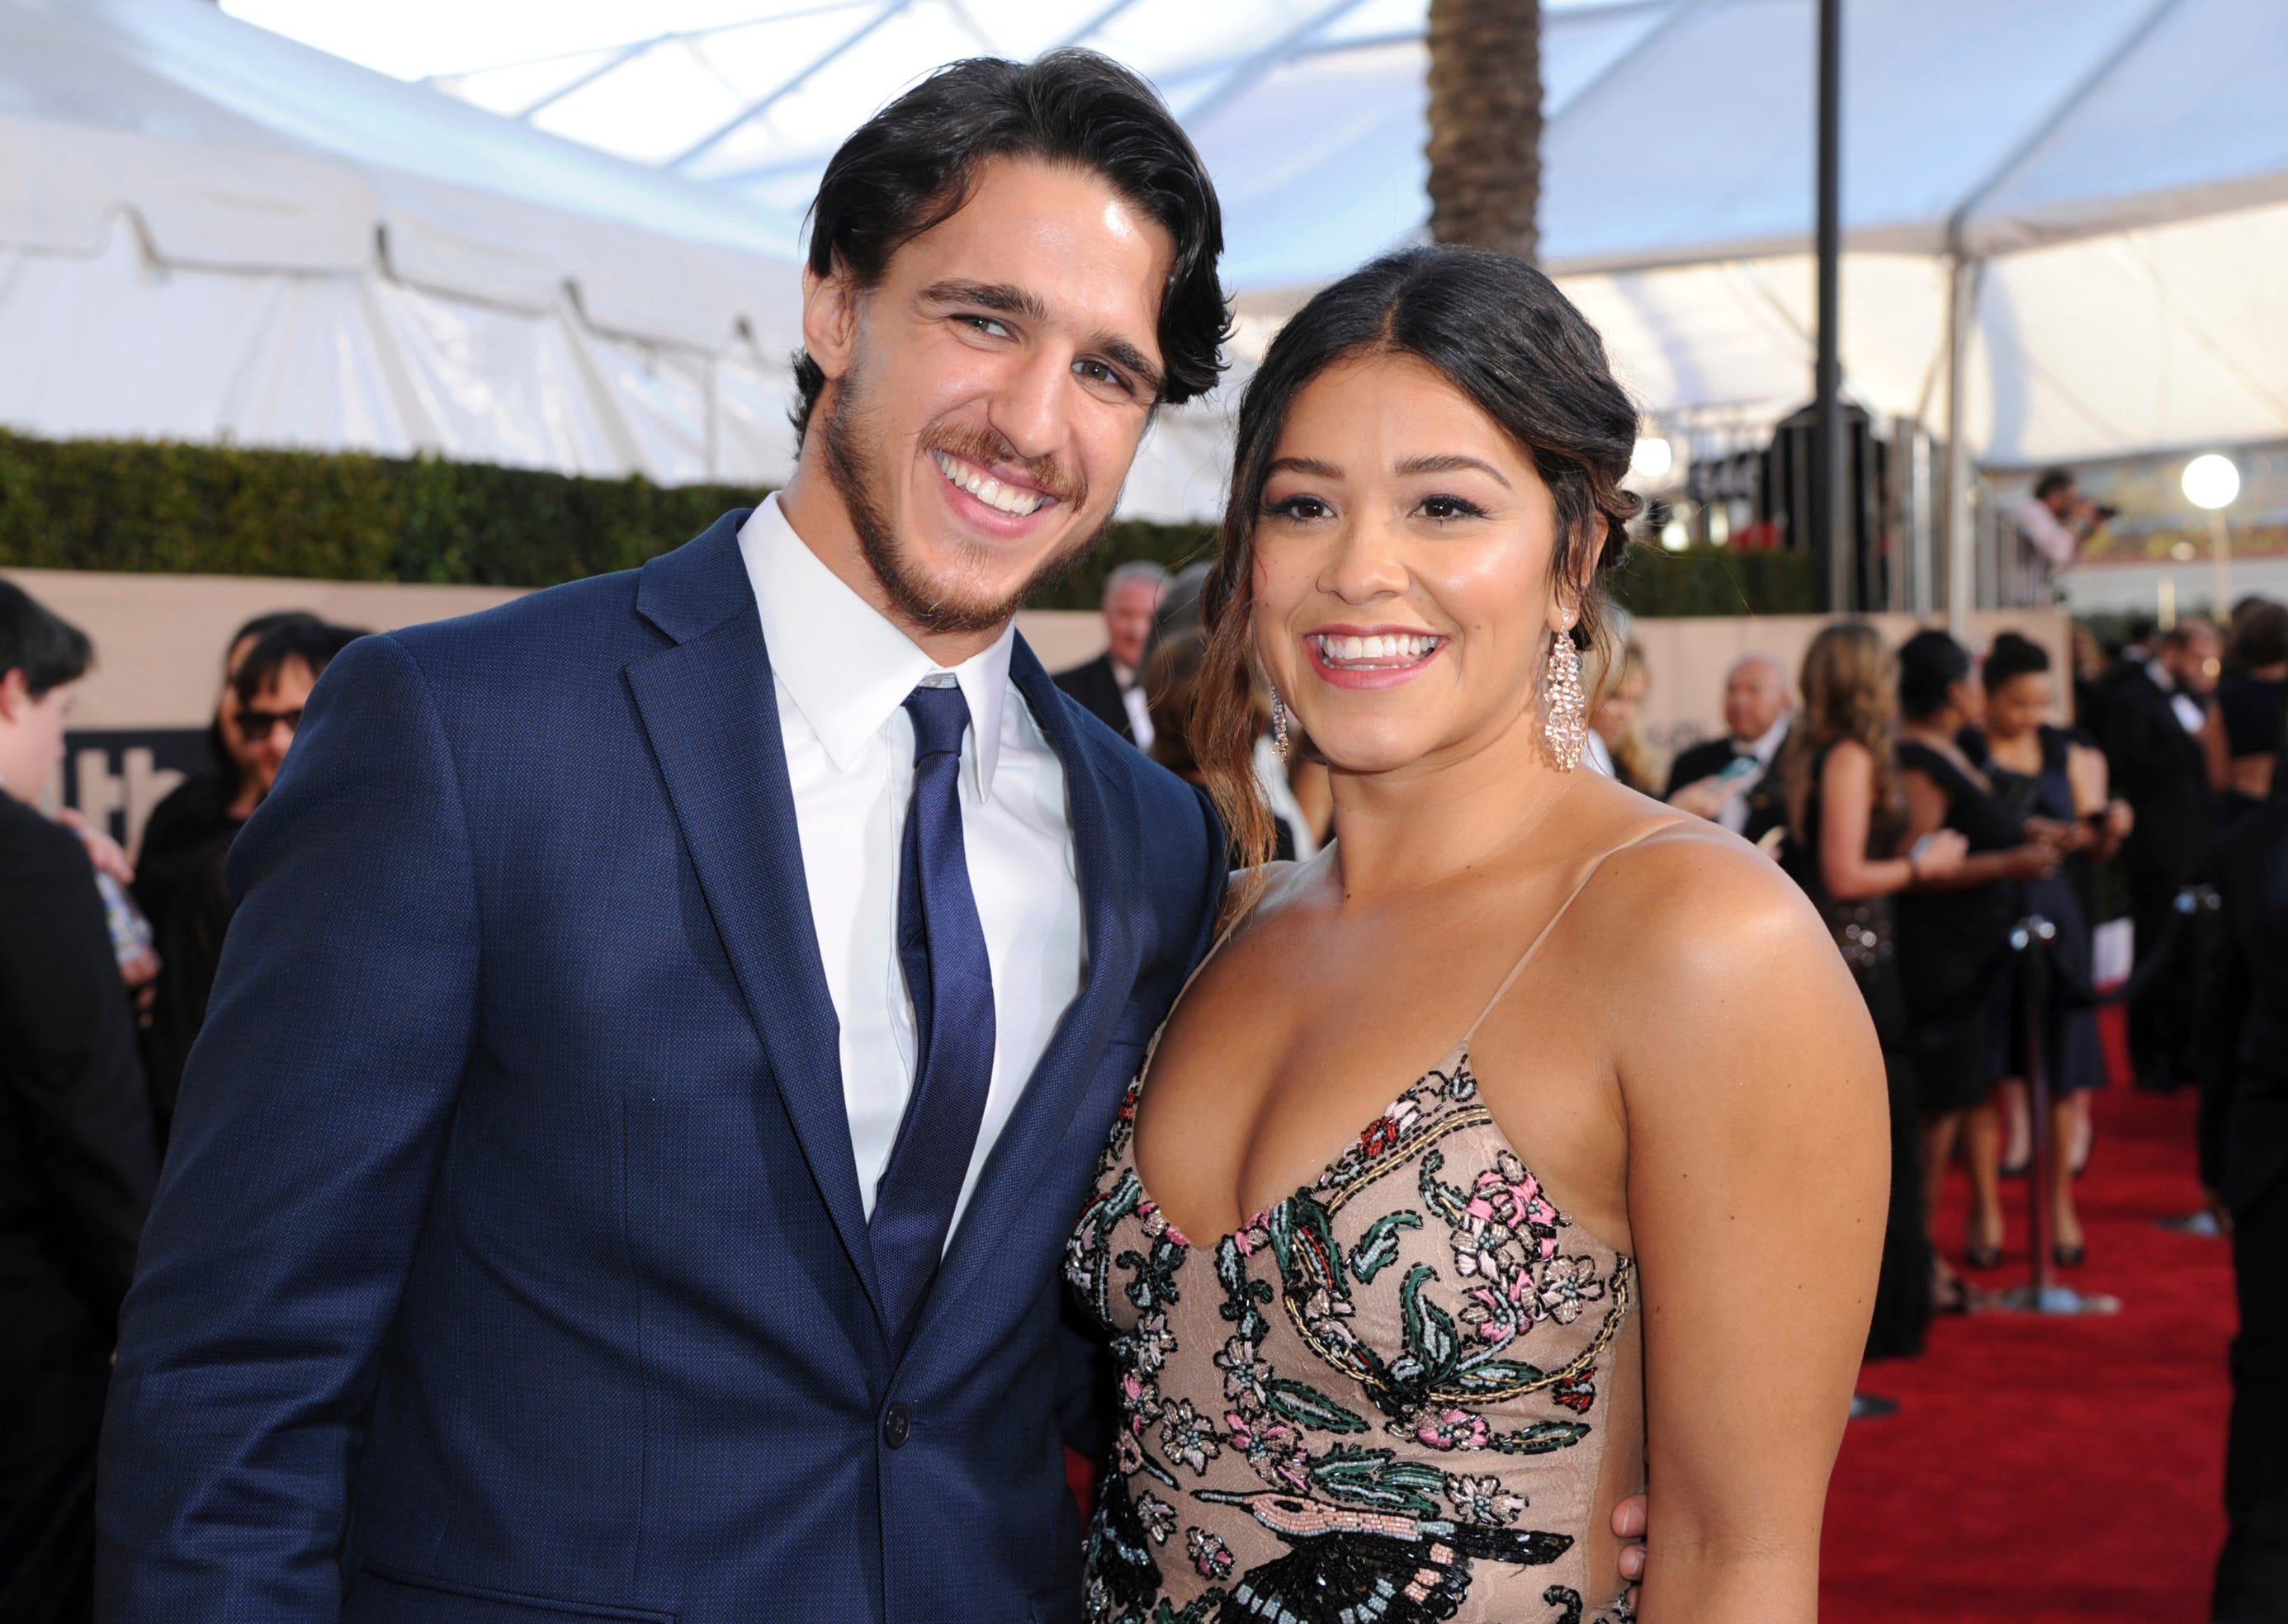 Gina Rodriguez shows off massive ring after confirming engagement to Joe LoCicero